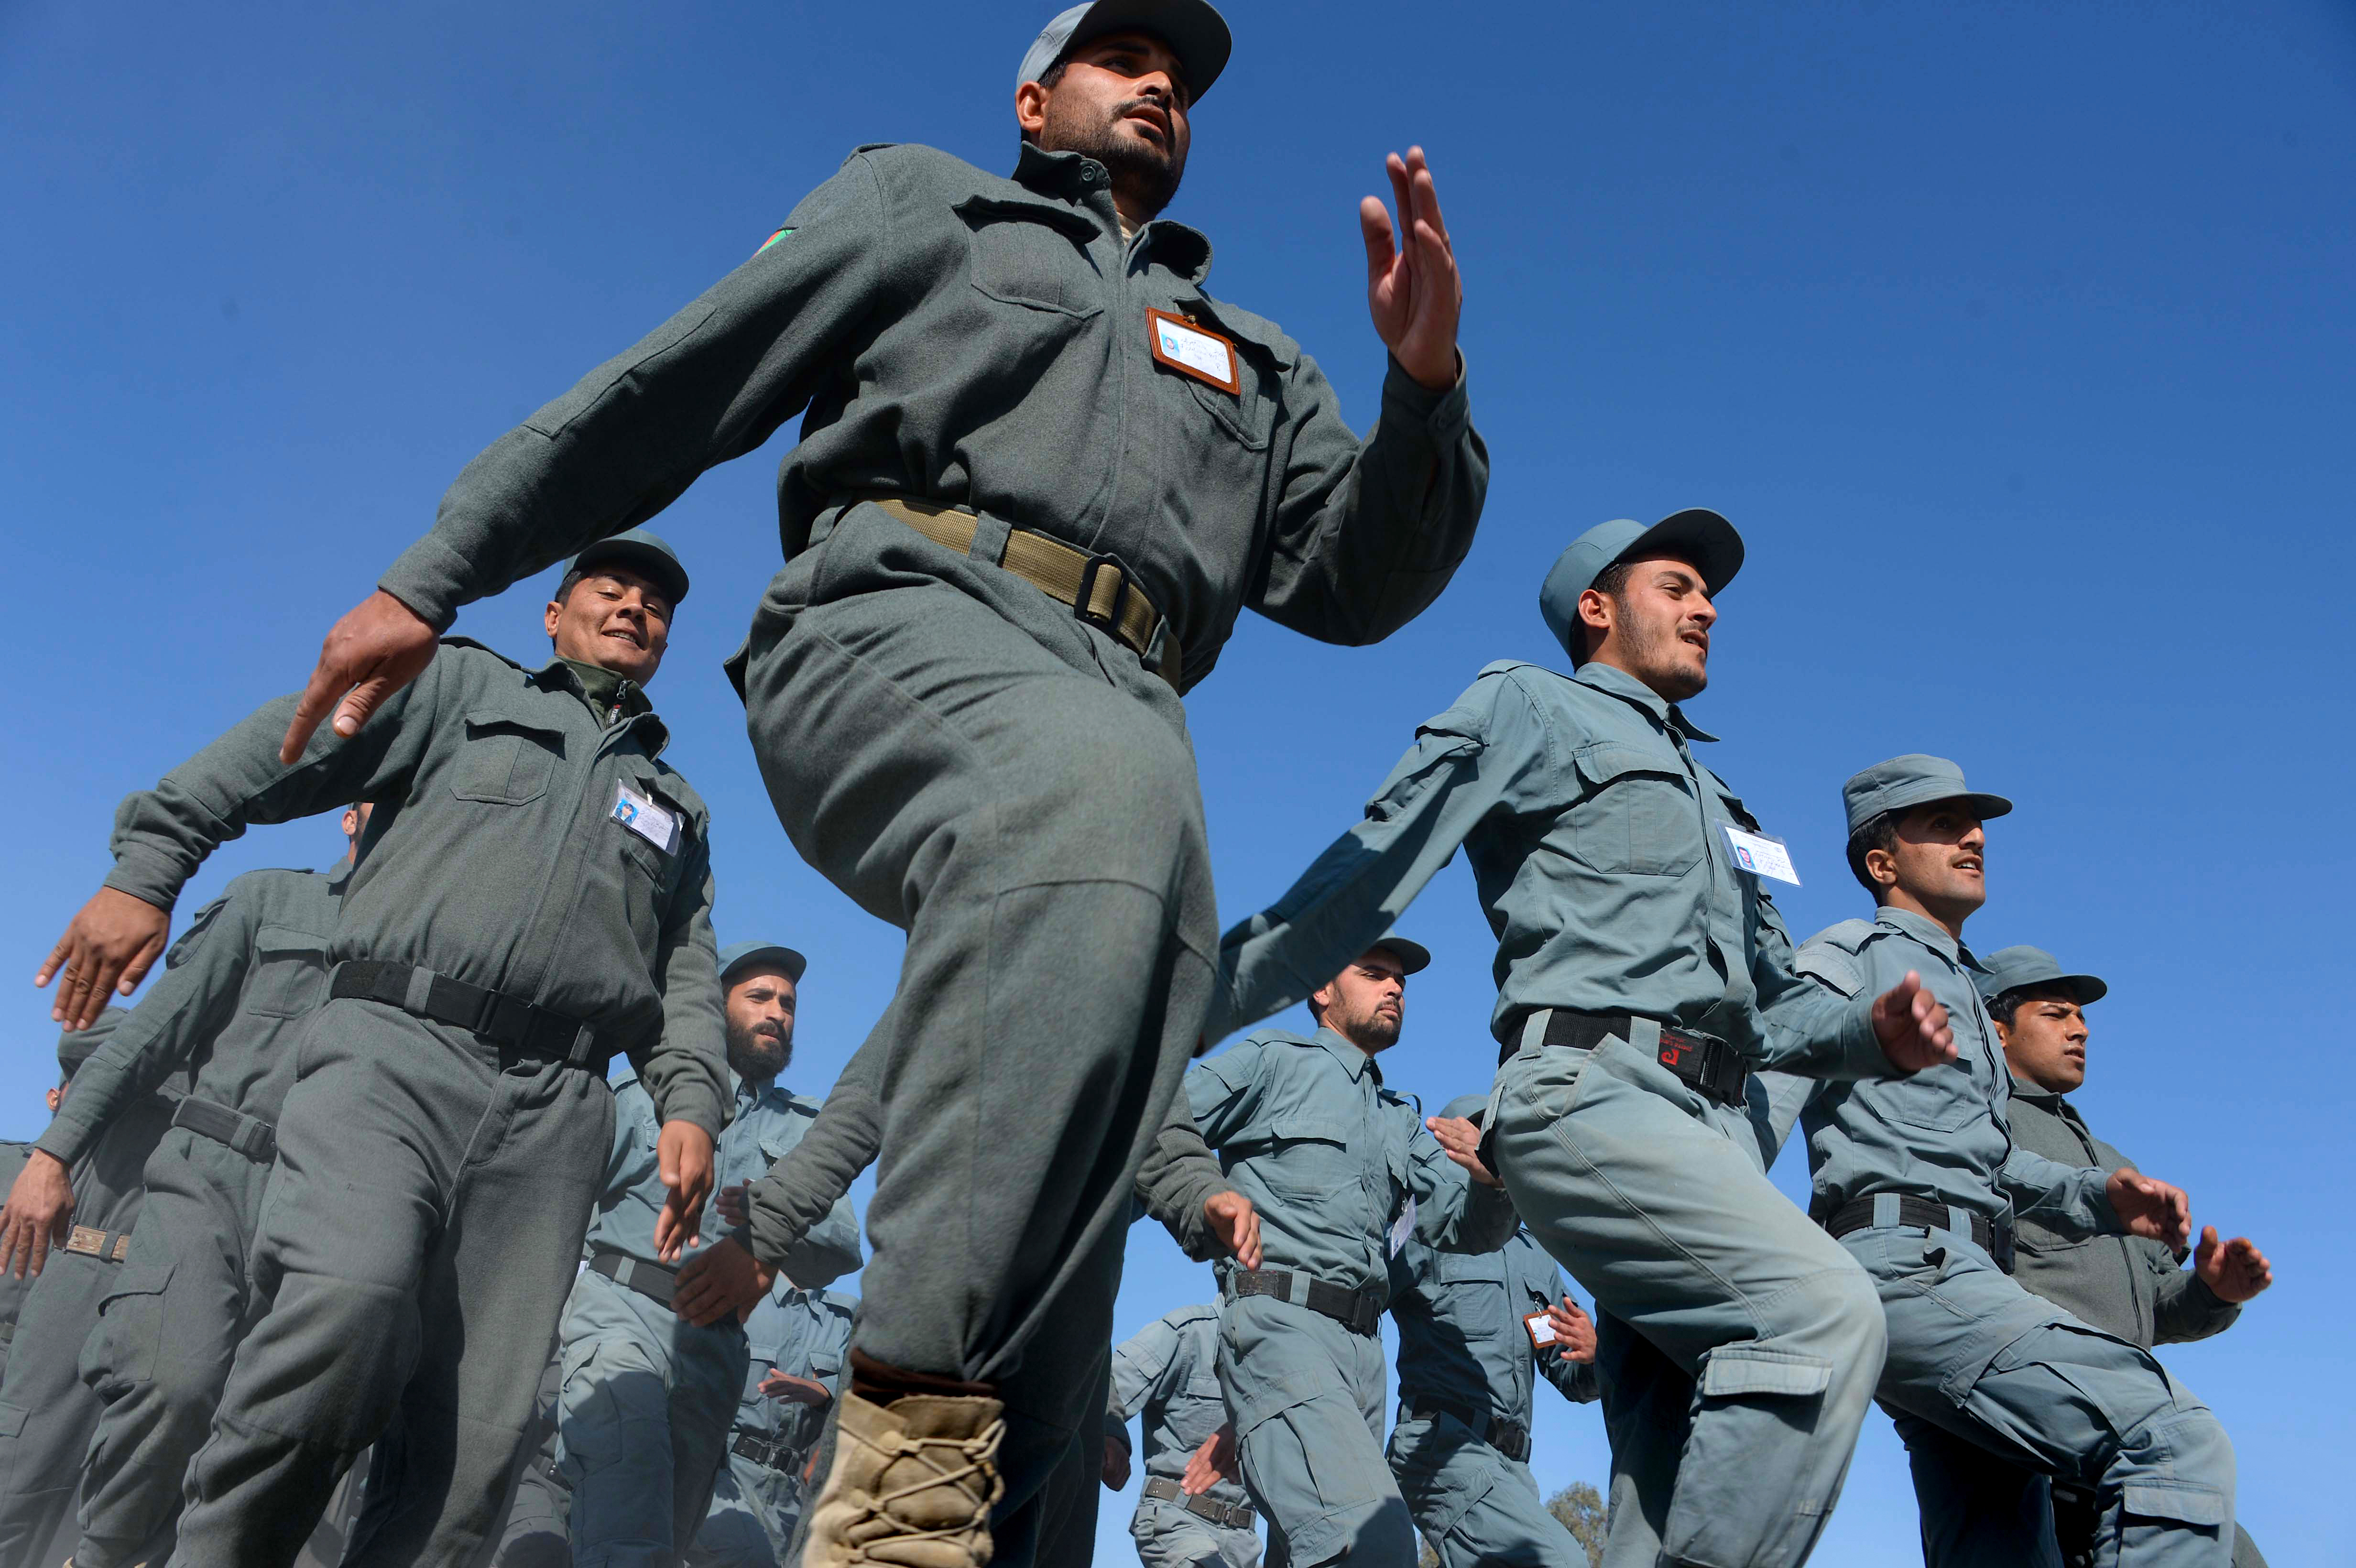 Afghanistan moves to build police capacity, combat corruption